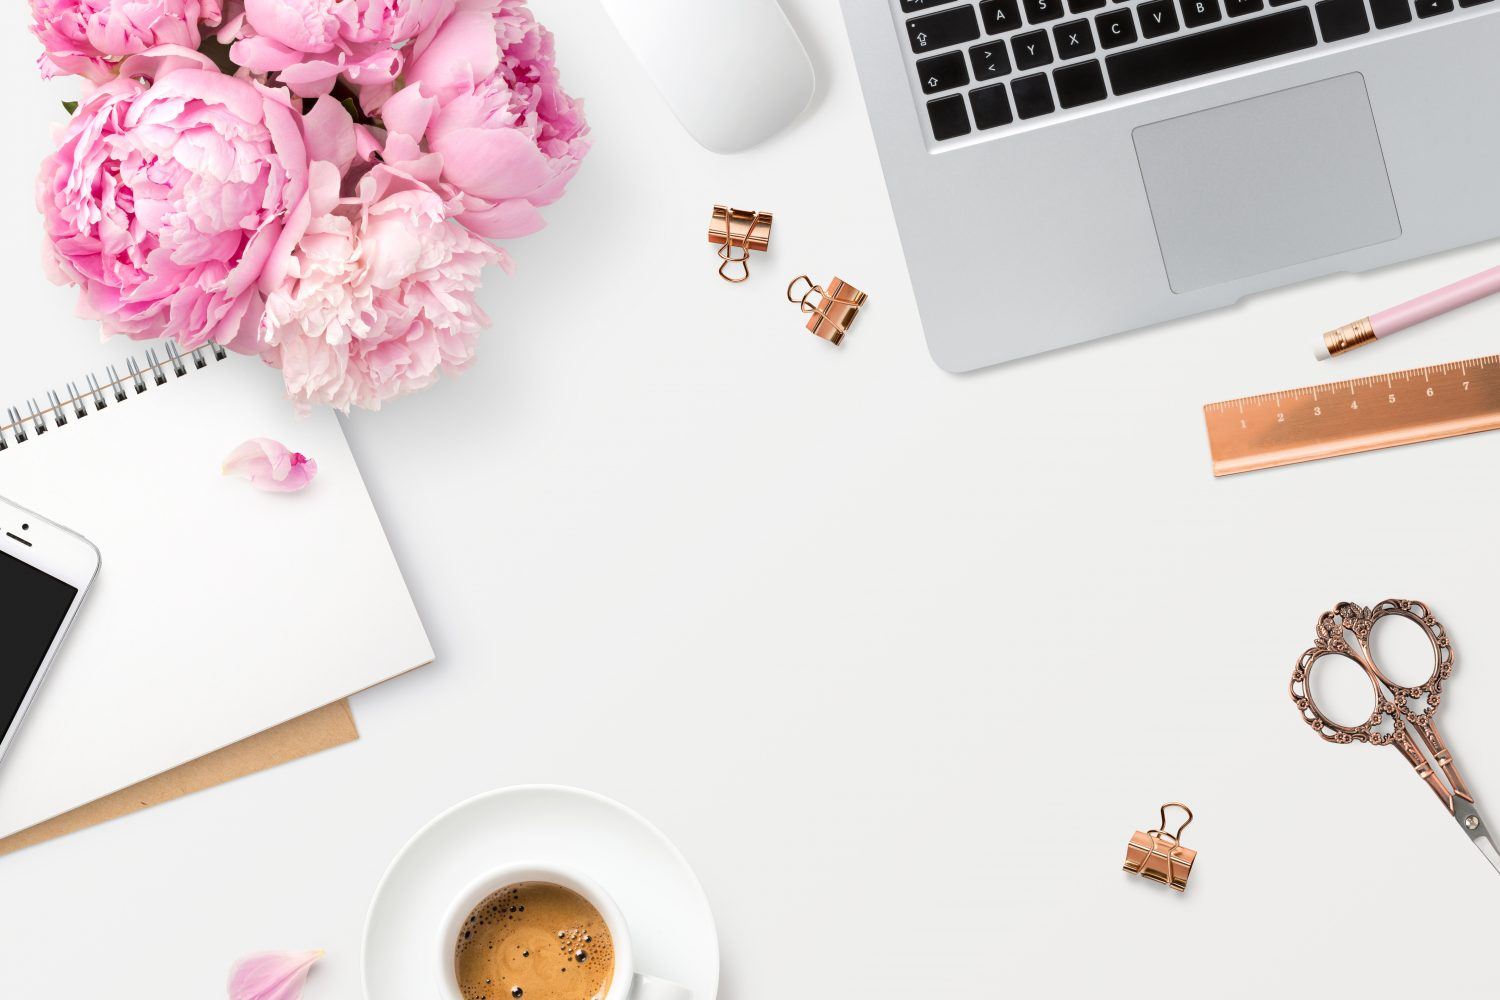 5 myths about working from home, myth, working from home, sahm, wahm, parenting, parenting tips, parenting blog, love, life, mom blog, mom blogger, mom bloggers, mom blogs